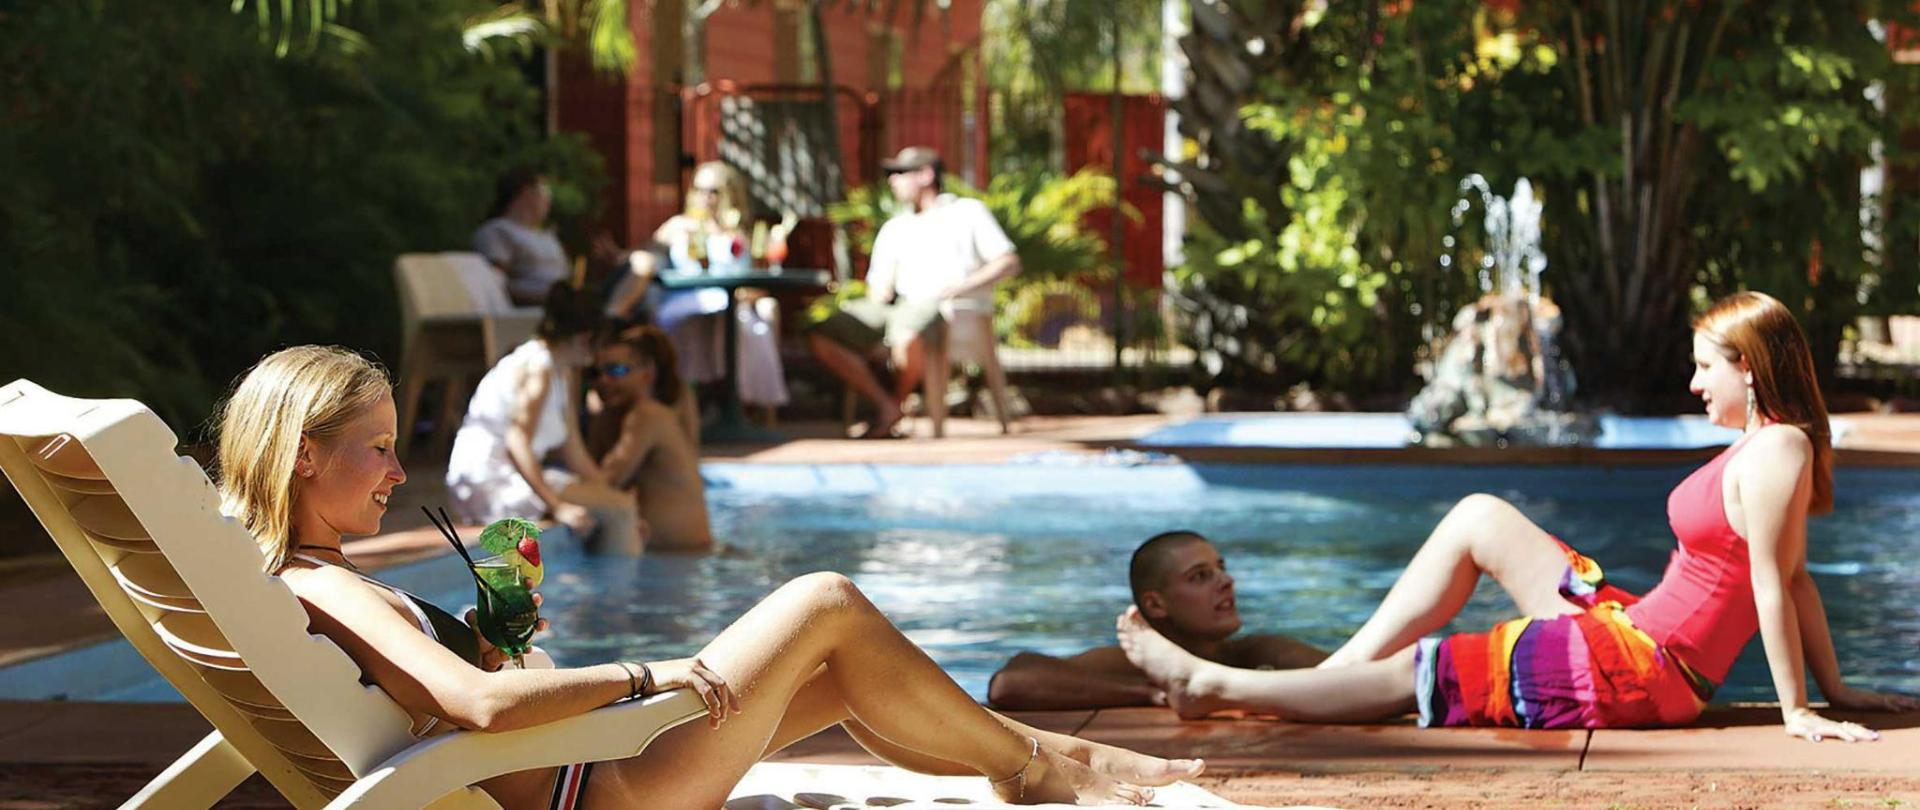 Hotel-Kunurra-Pool-girls.jpg